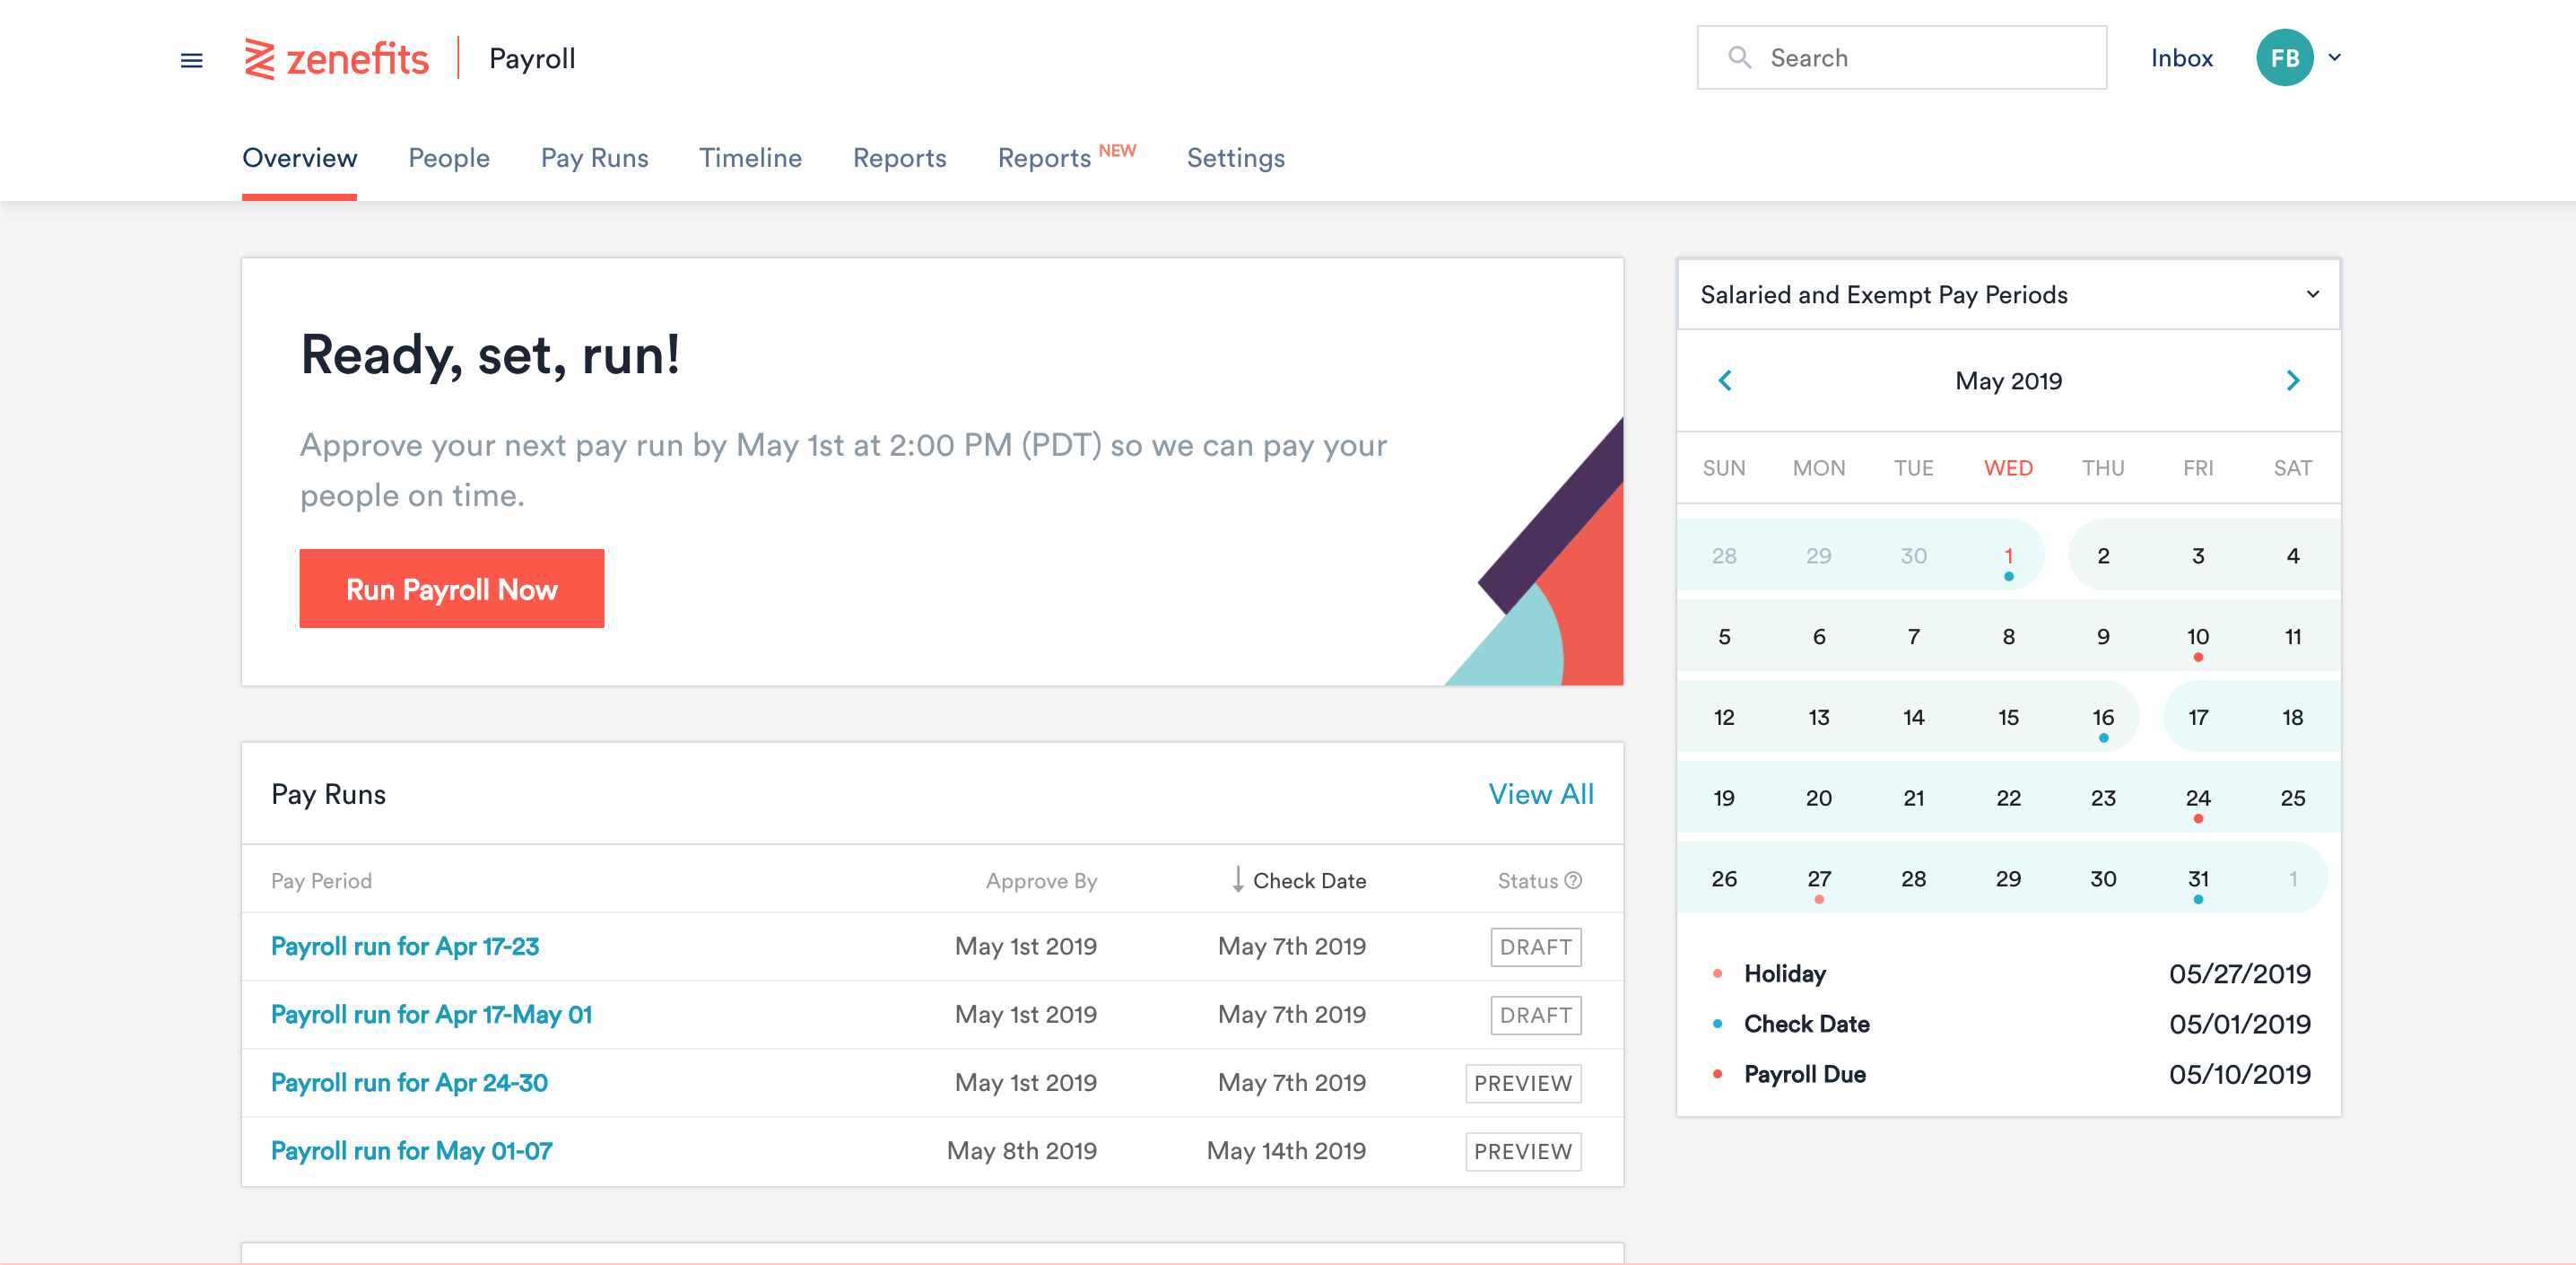 Screenshot of the payroll feature in Zenefits